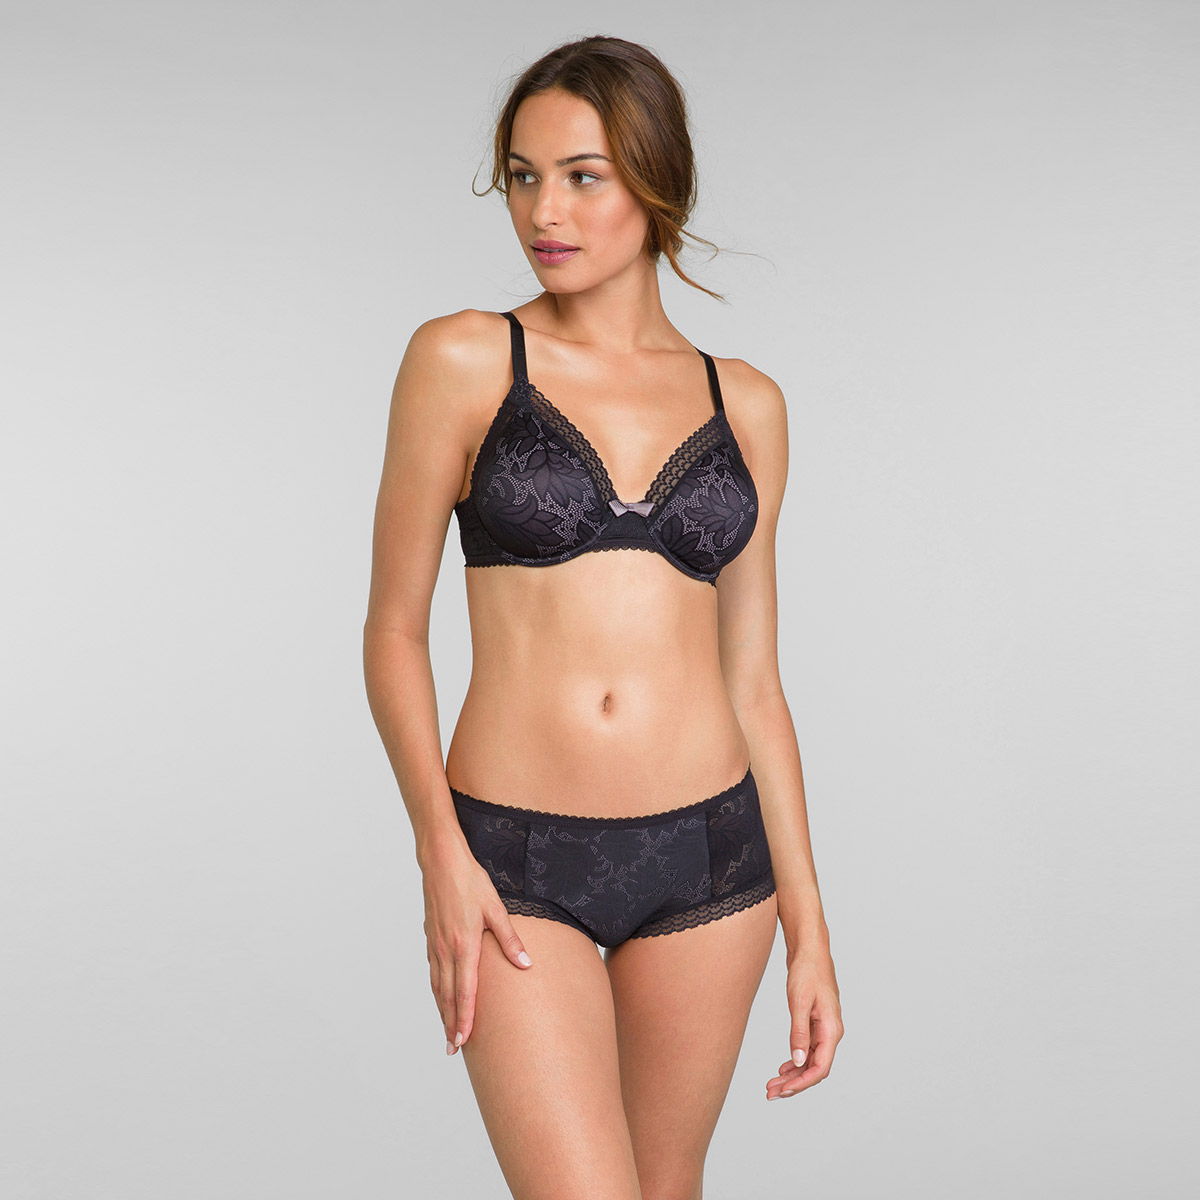 Reggiseno triangolo con ferretto nero Invisible Elegance, , PLAYTEX